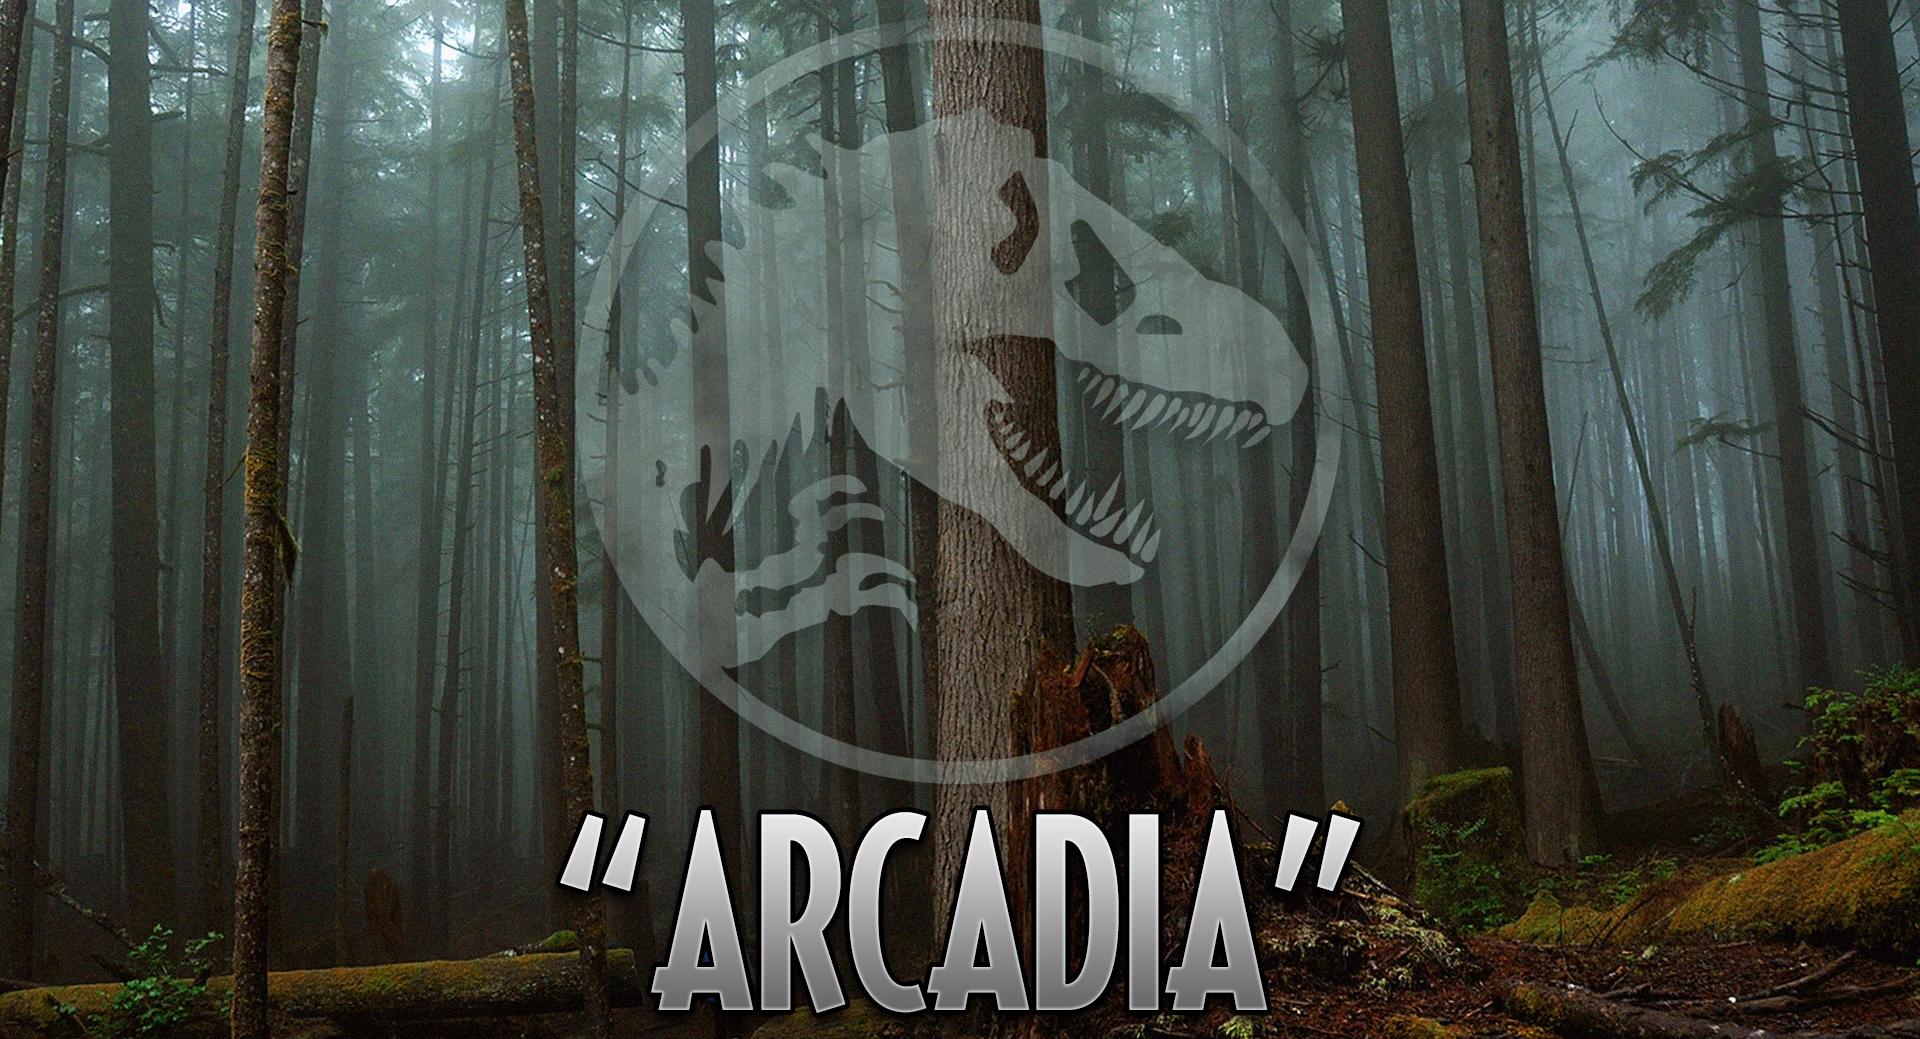 'Jurassic World 3' Filming Under the Working Title of 'Arcadia'; Adds Vancouver Canada to Filming Locations